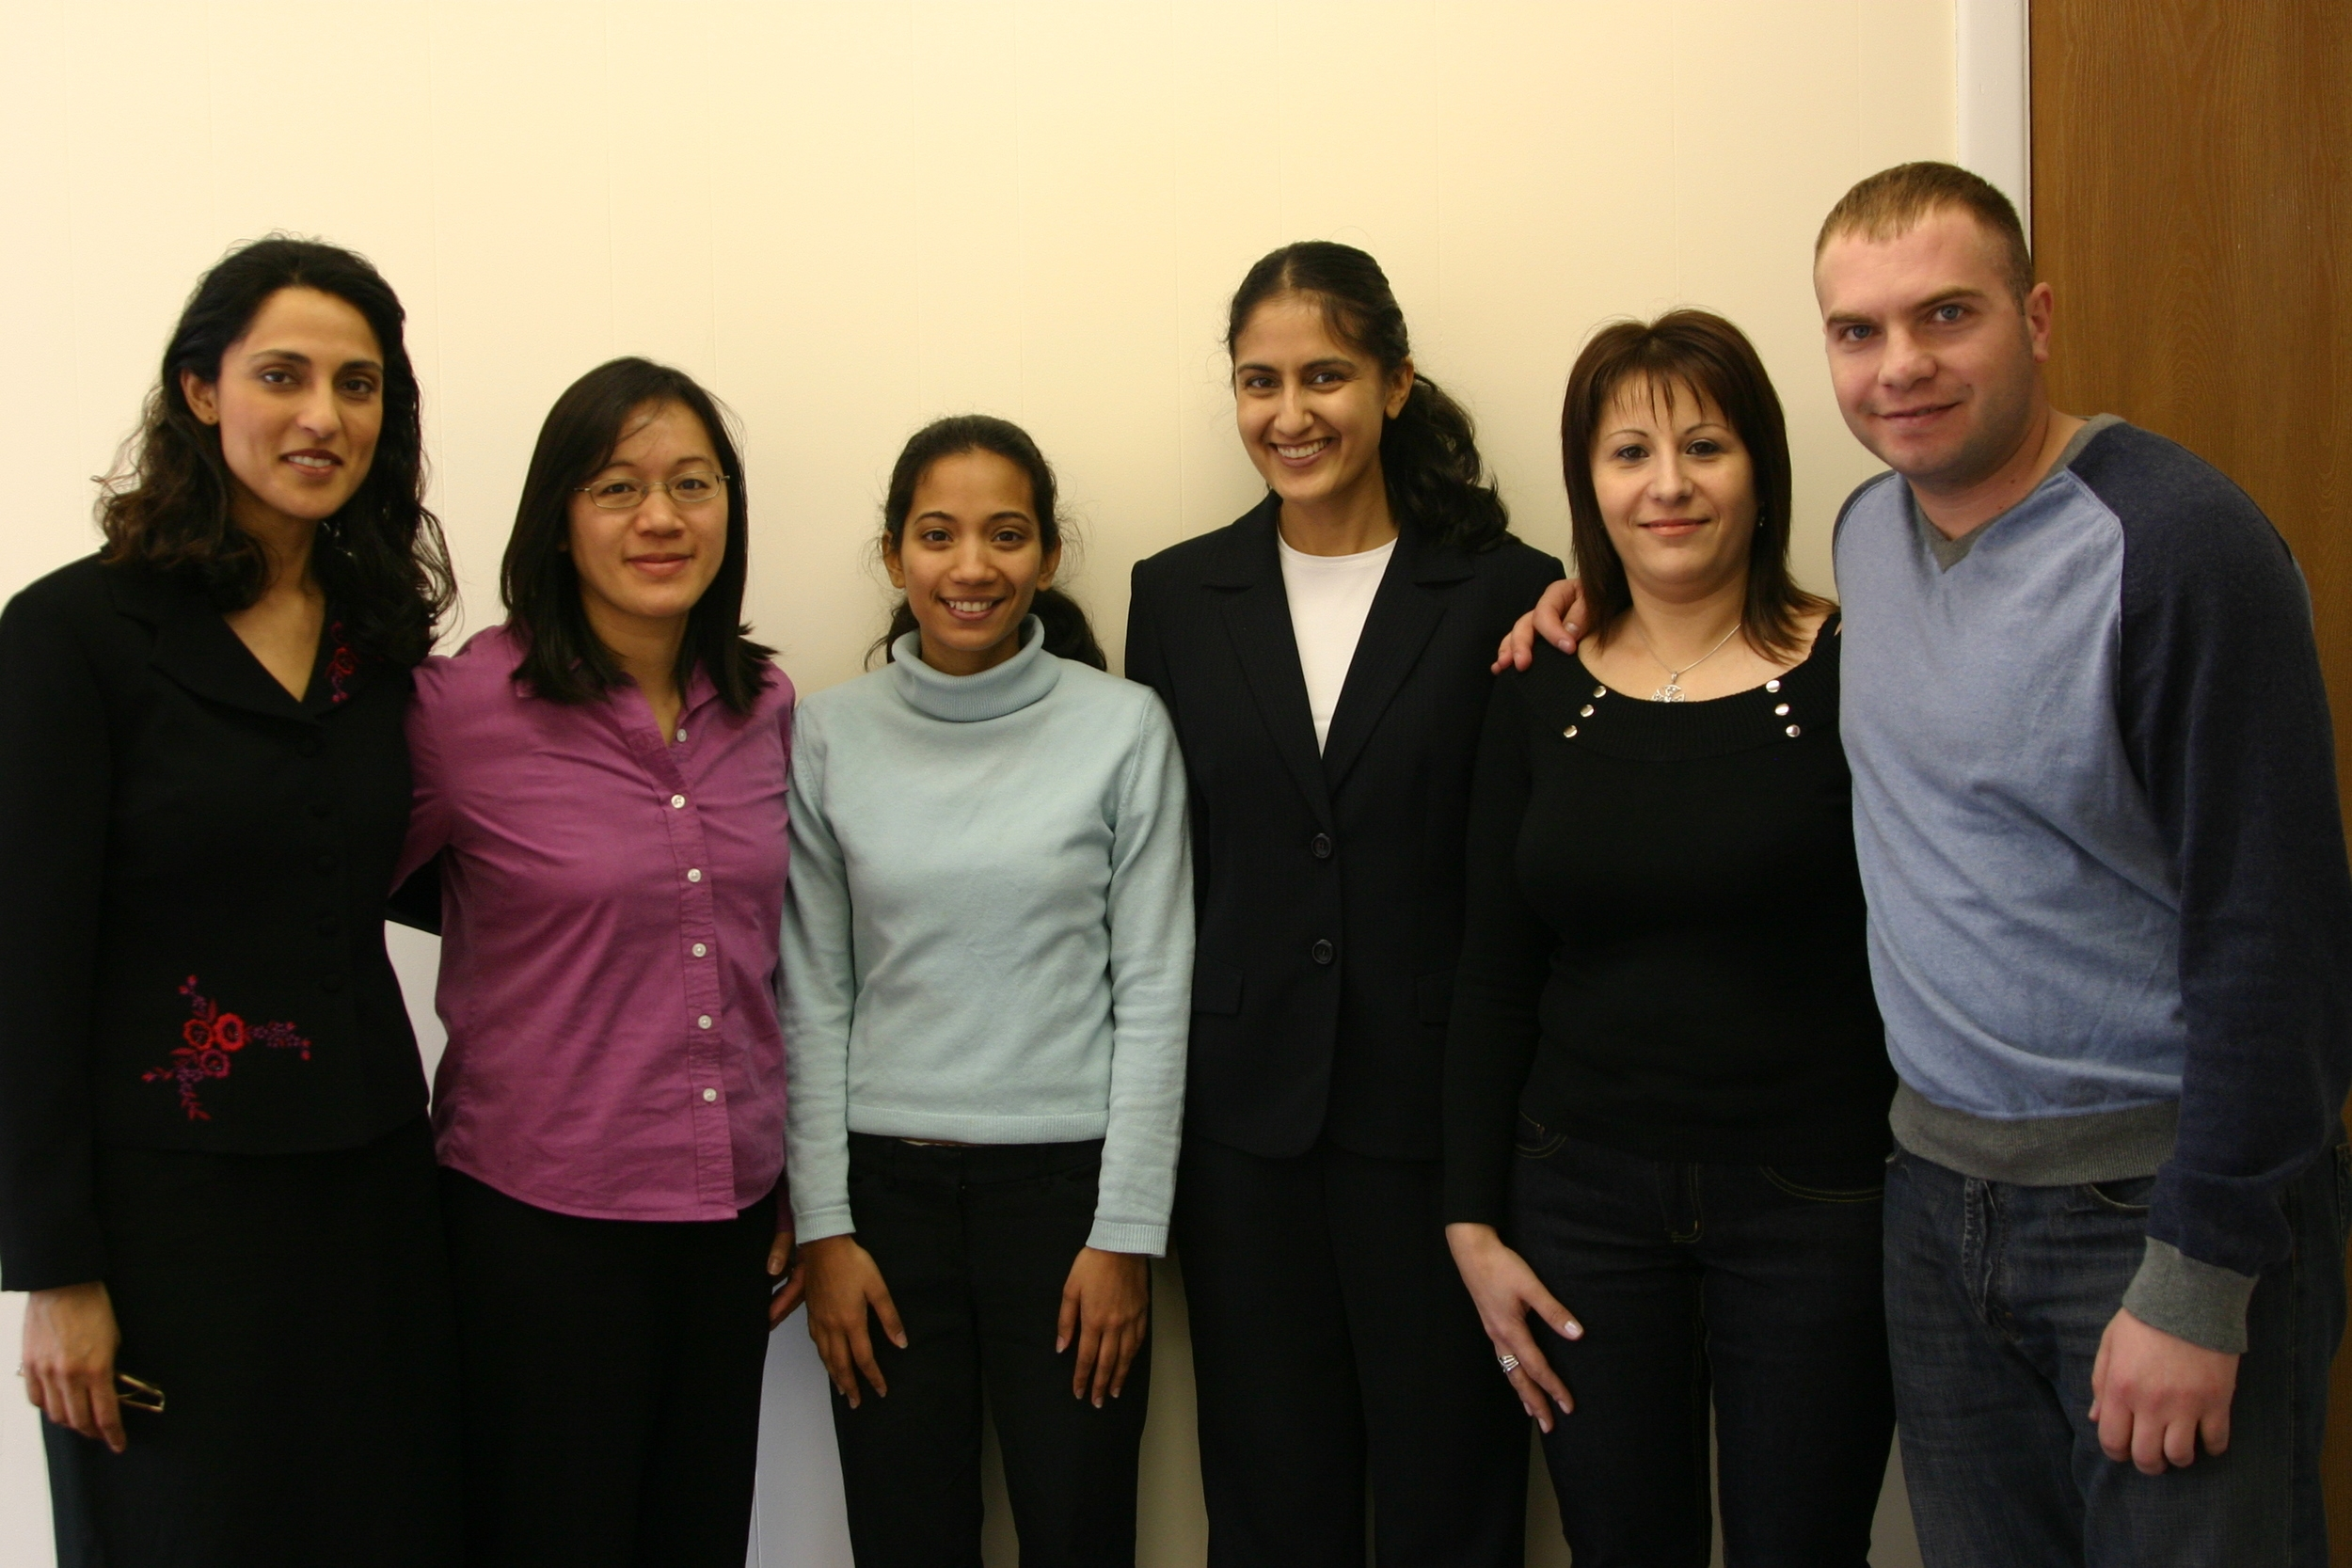 Attorney Samia Chandraker with staff and sports clients